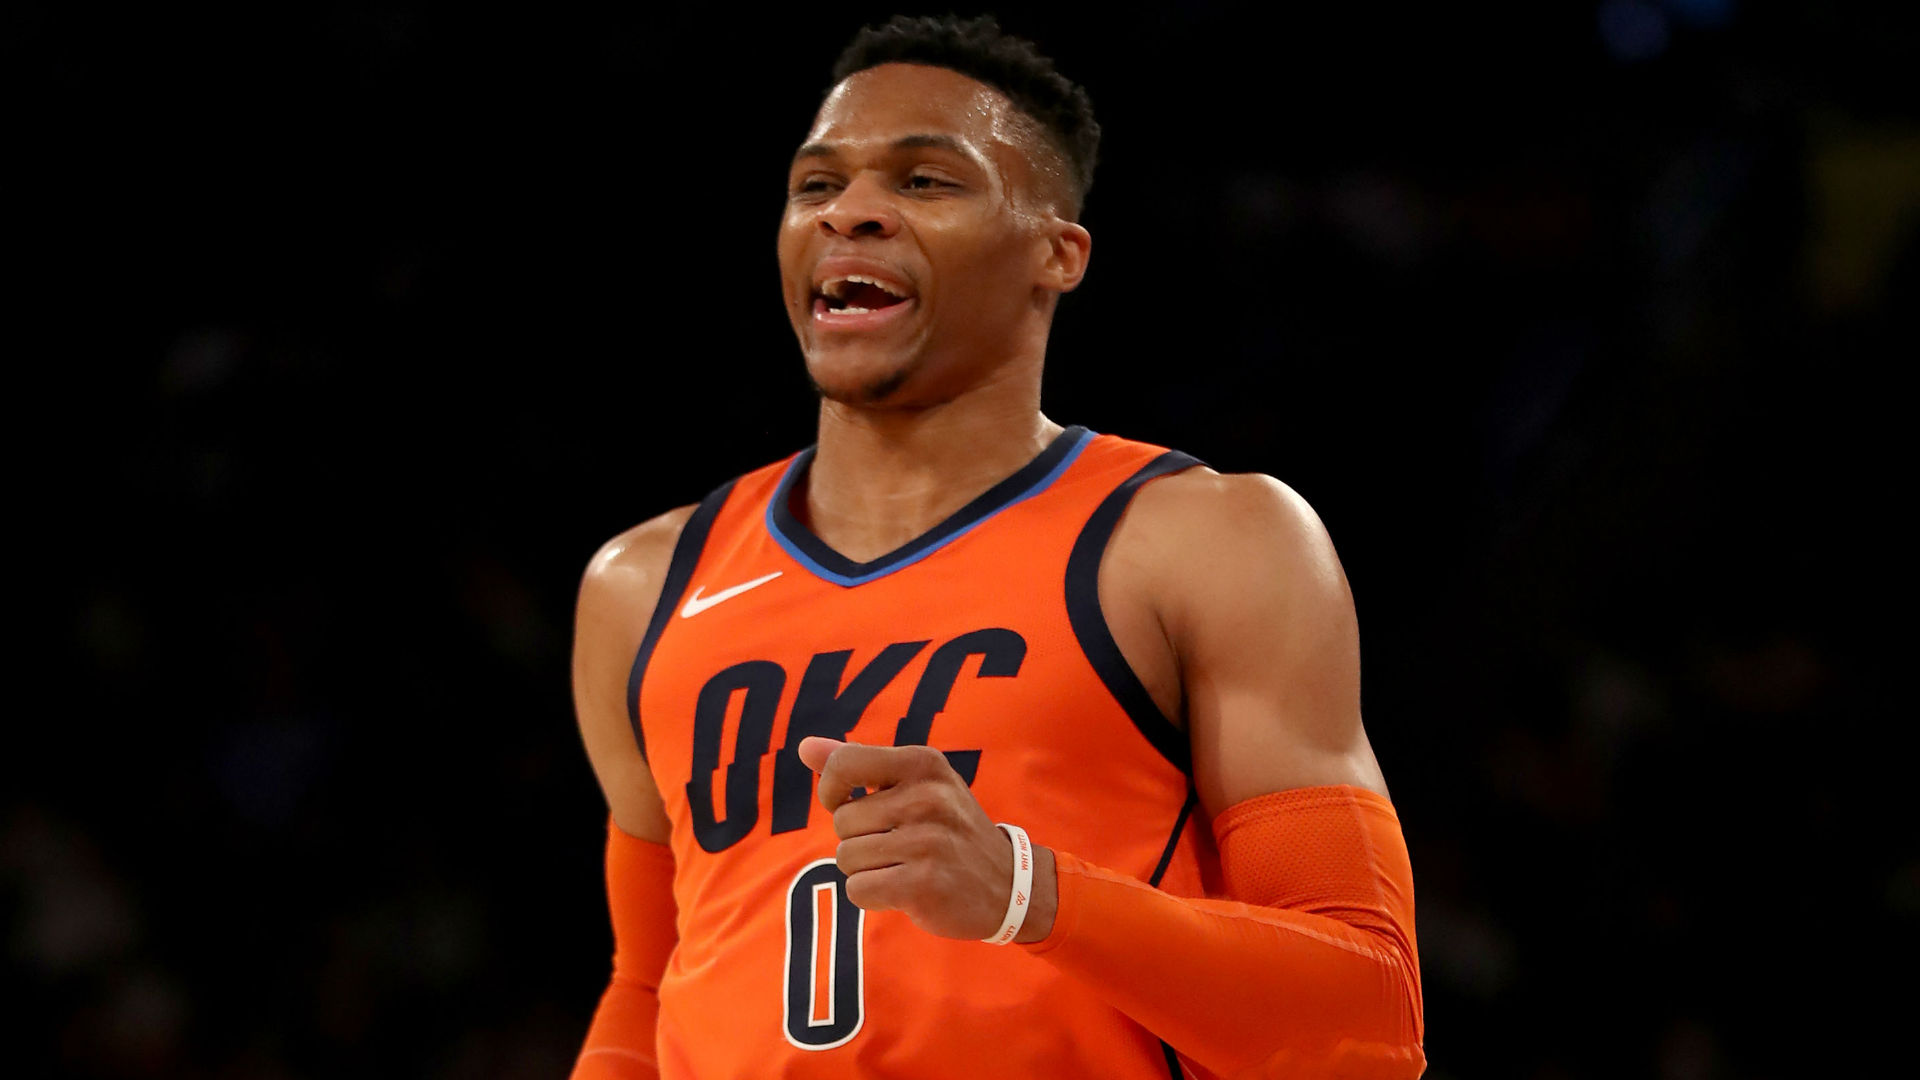 Russell Westbrook recorded a 10th consecutive triple-double to make history in the NBA.